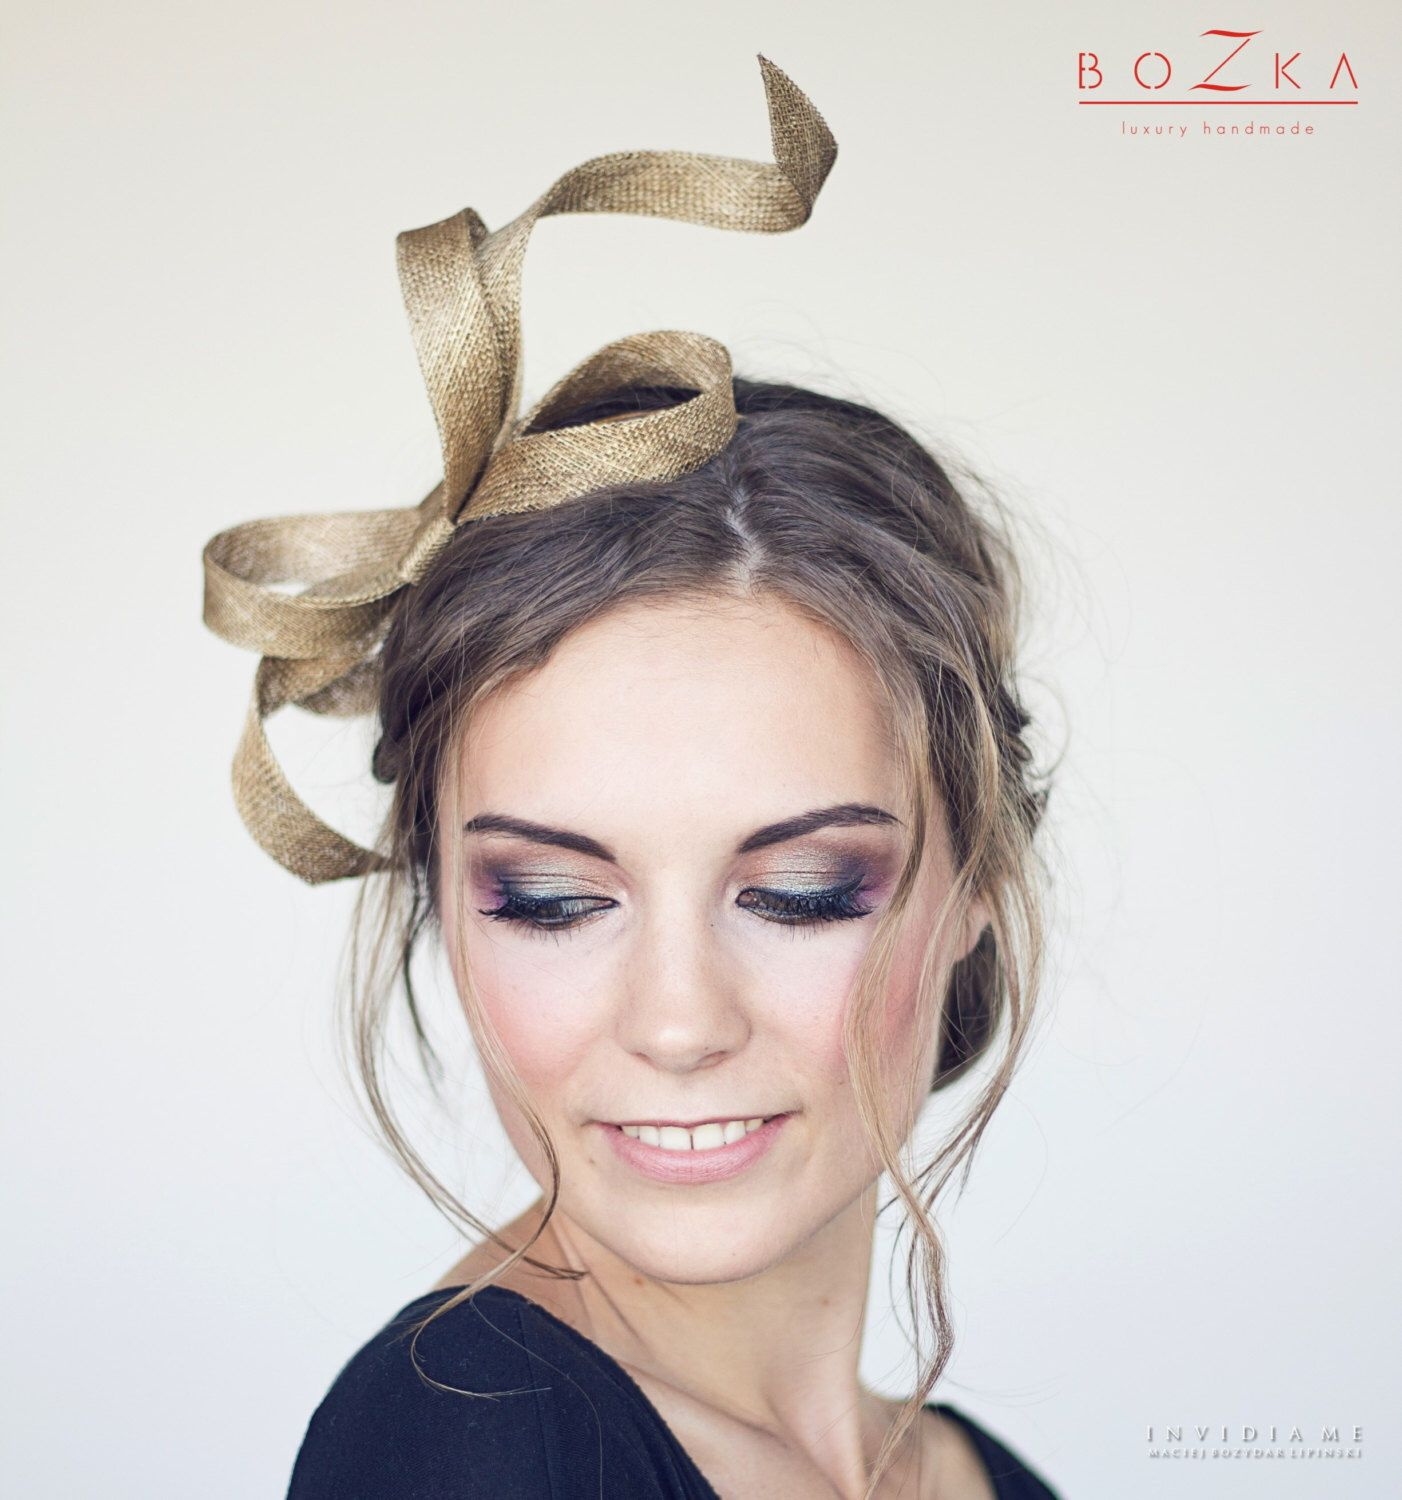 9258b8f8333 I m obsessed with the idea of wearing a modern fascinator to the next  wedding I attend - like this gold headpiece by boZkaLuxuryHandmade on Etsy